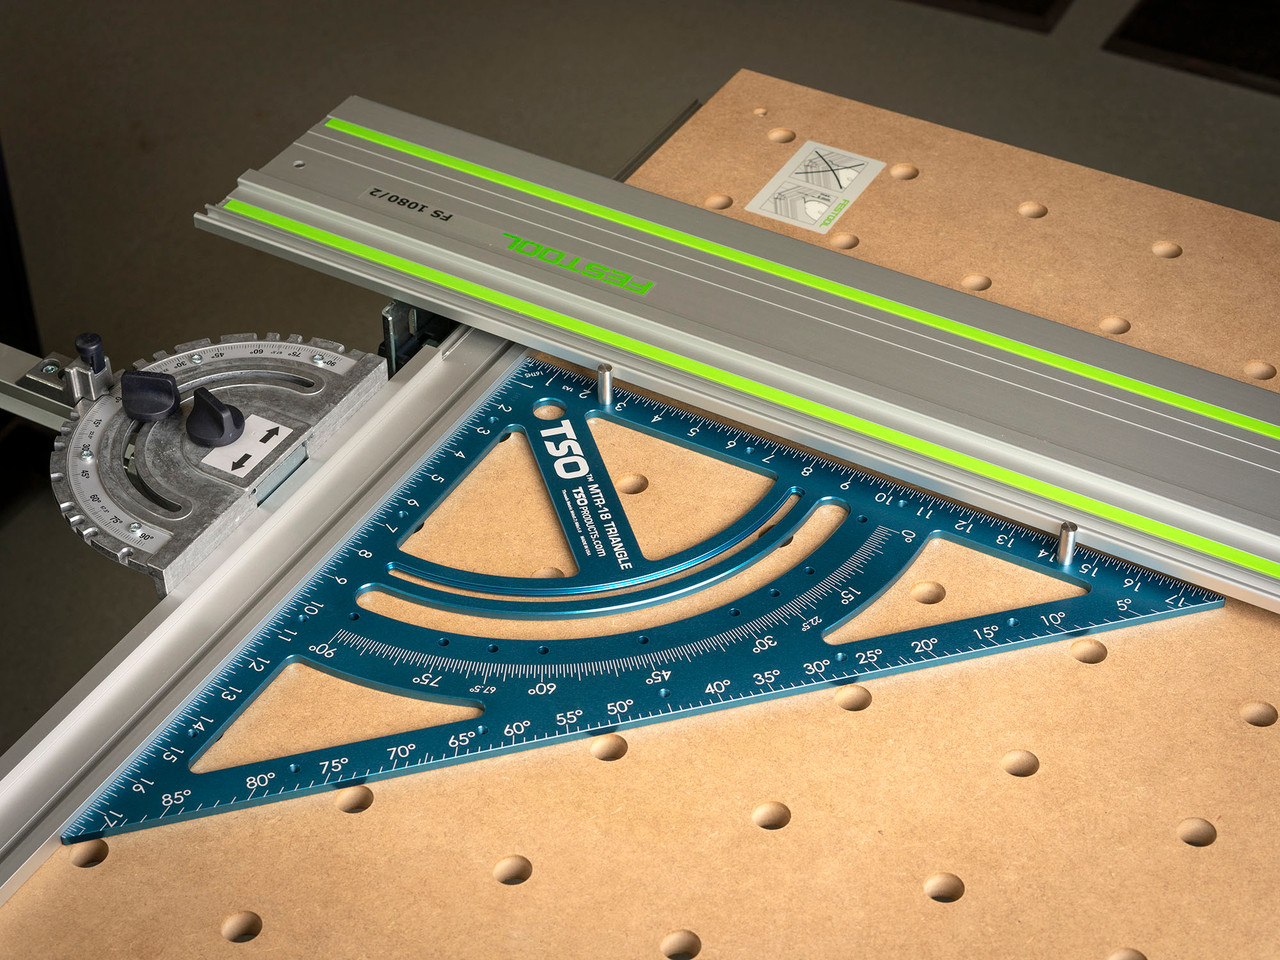 Use the MTR-18 to square your MFT/3 guide rail to fence - the single most important measurement to make before any cut!